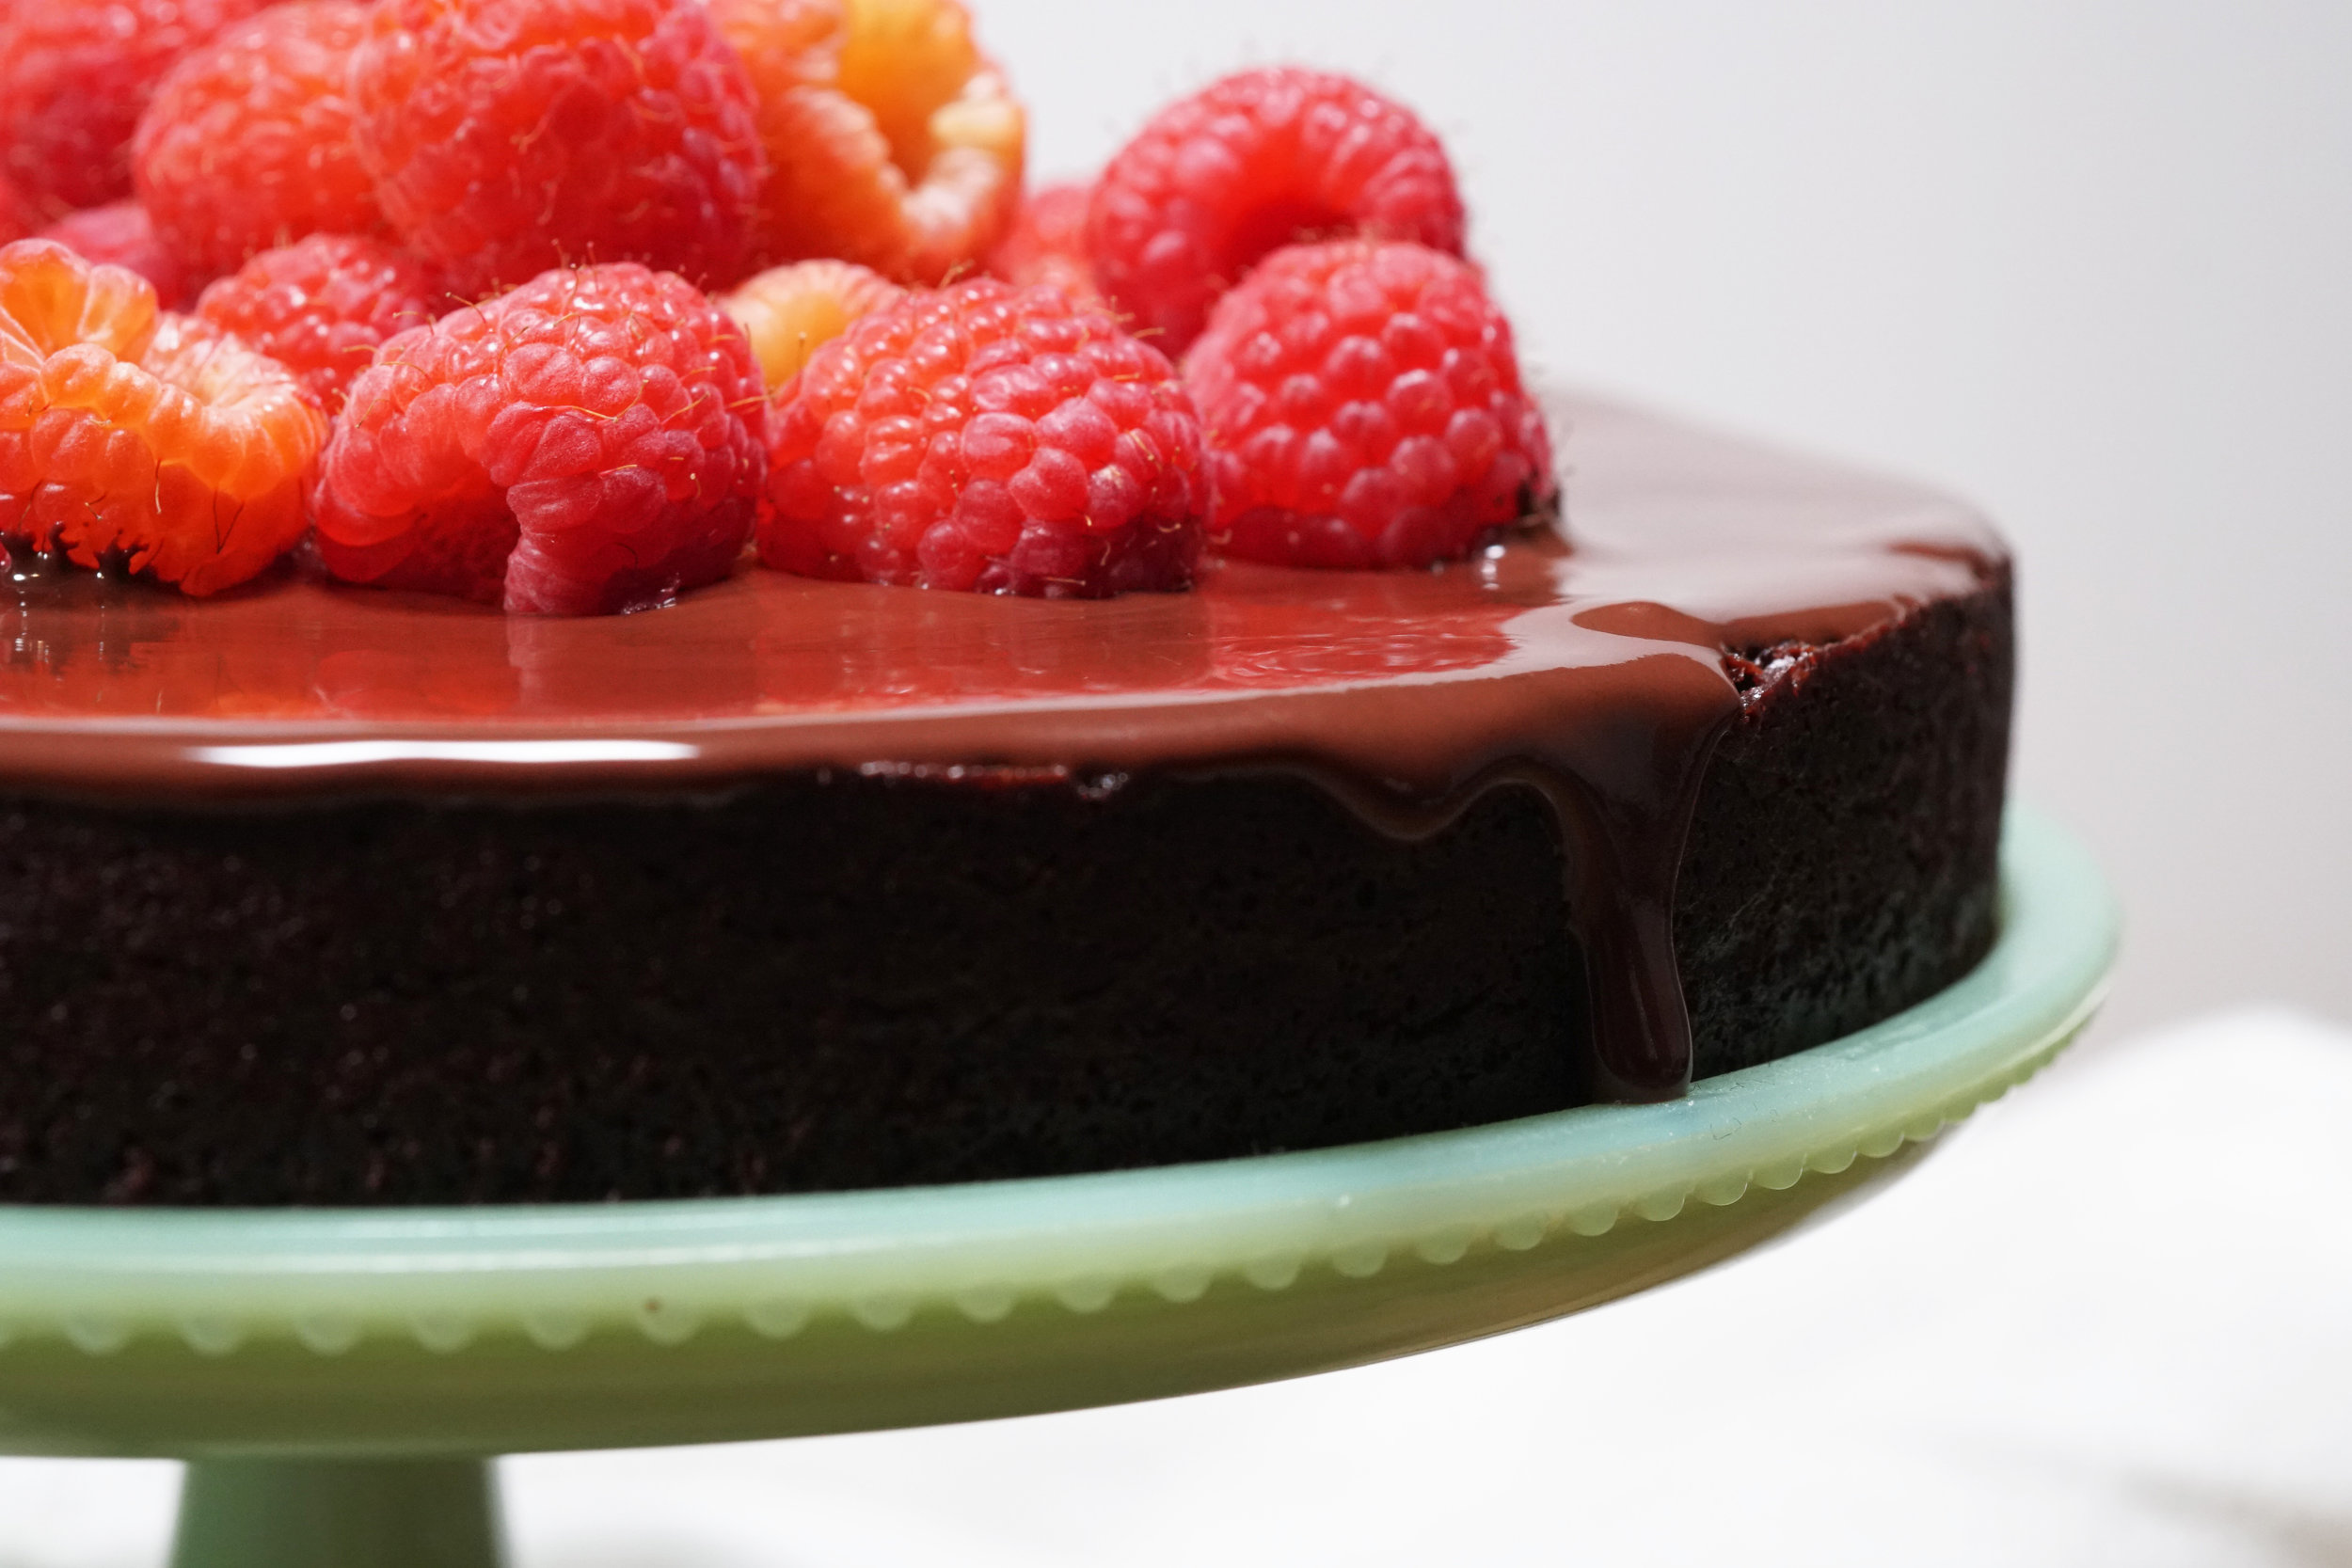 Flourless Chocolate Cake with Raspberries F.jpg